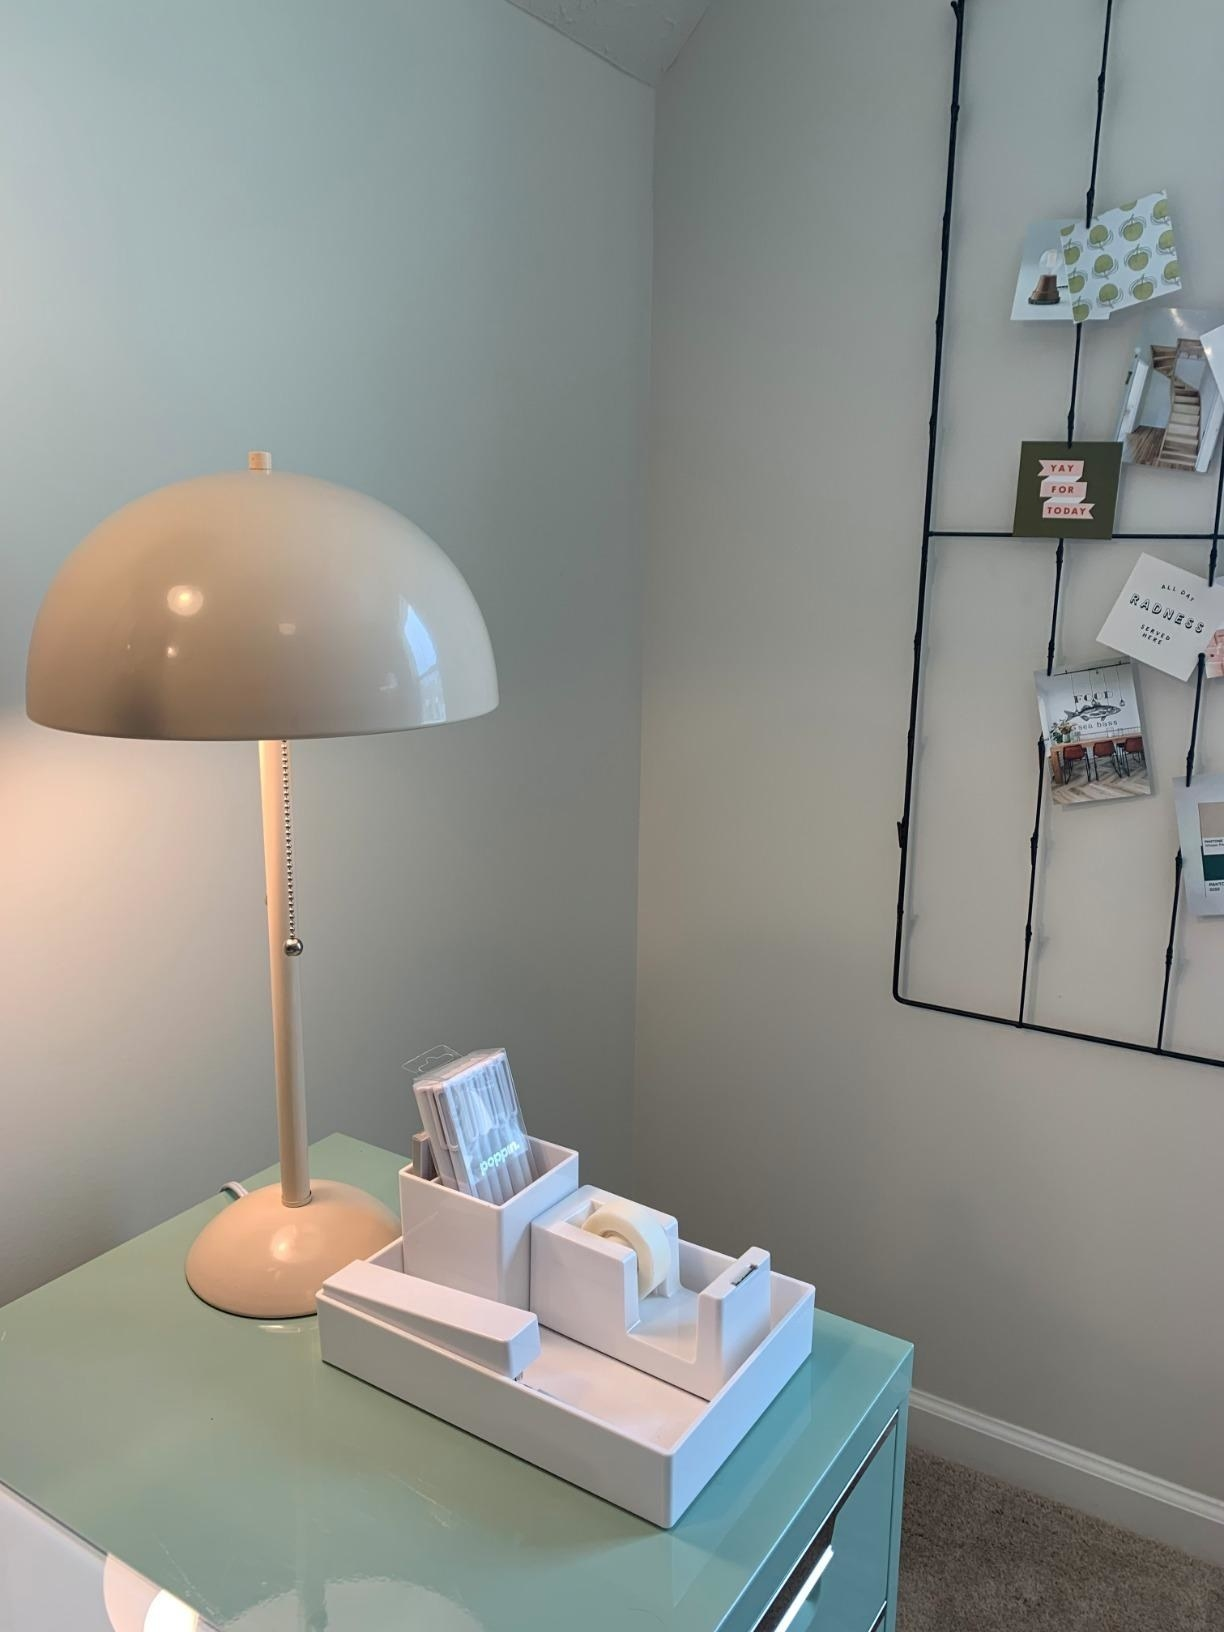 The lamp, which has a round base, thin column, and a rounded dome top, on a reviewer's desk